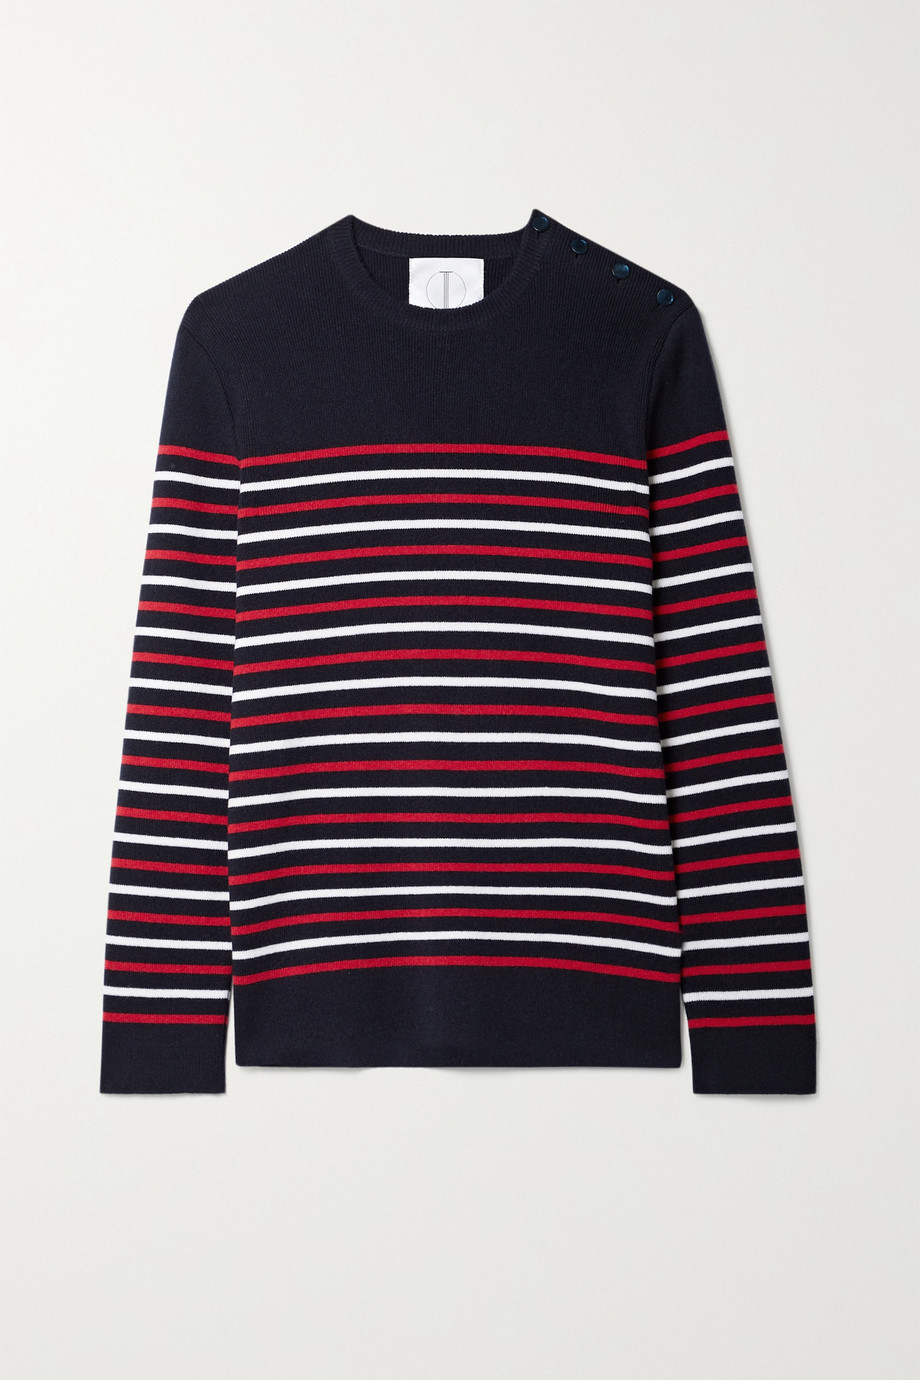 TRE by Natalie Ratabesi The Marie button-detailed striped cashmere sweater